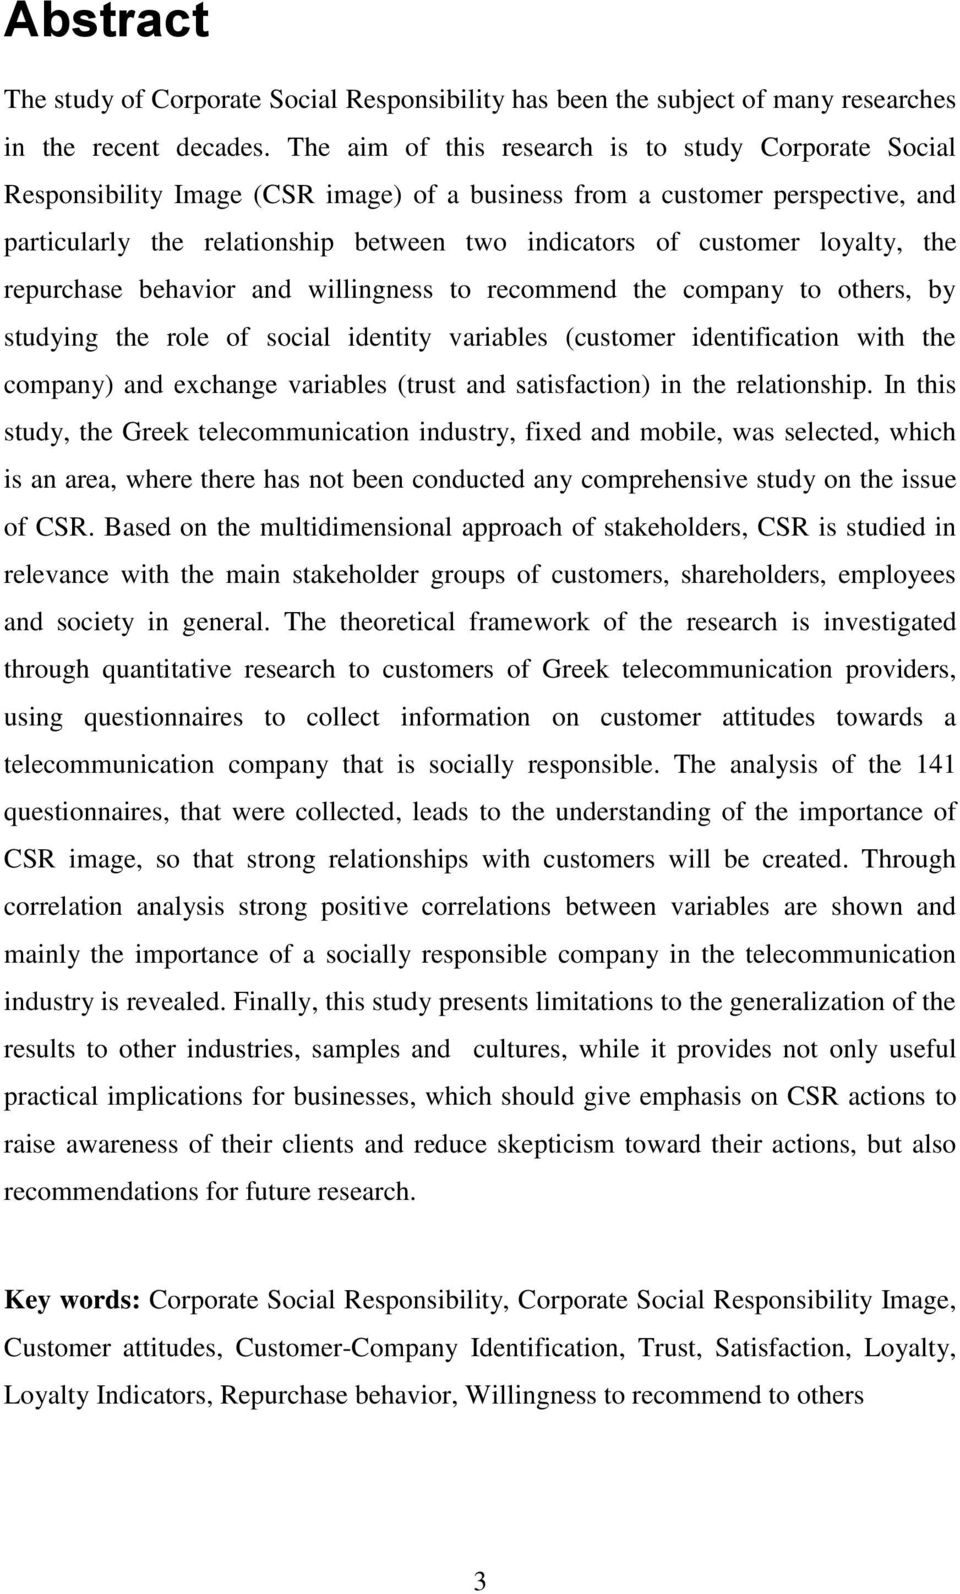 loyalty, the repurchase behavior and willingness to recommend the company to others, by studying the role of social identity variables (customer identification with the company) and exchange